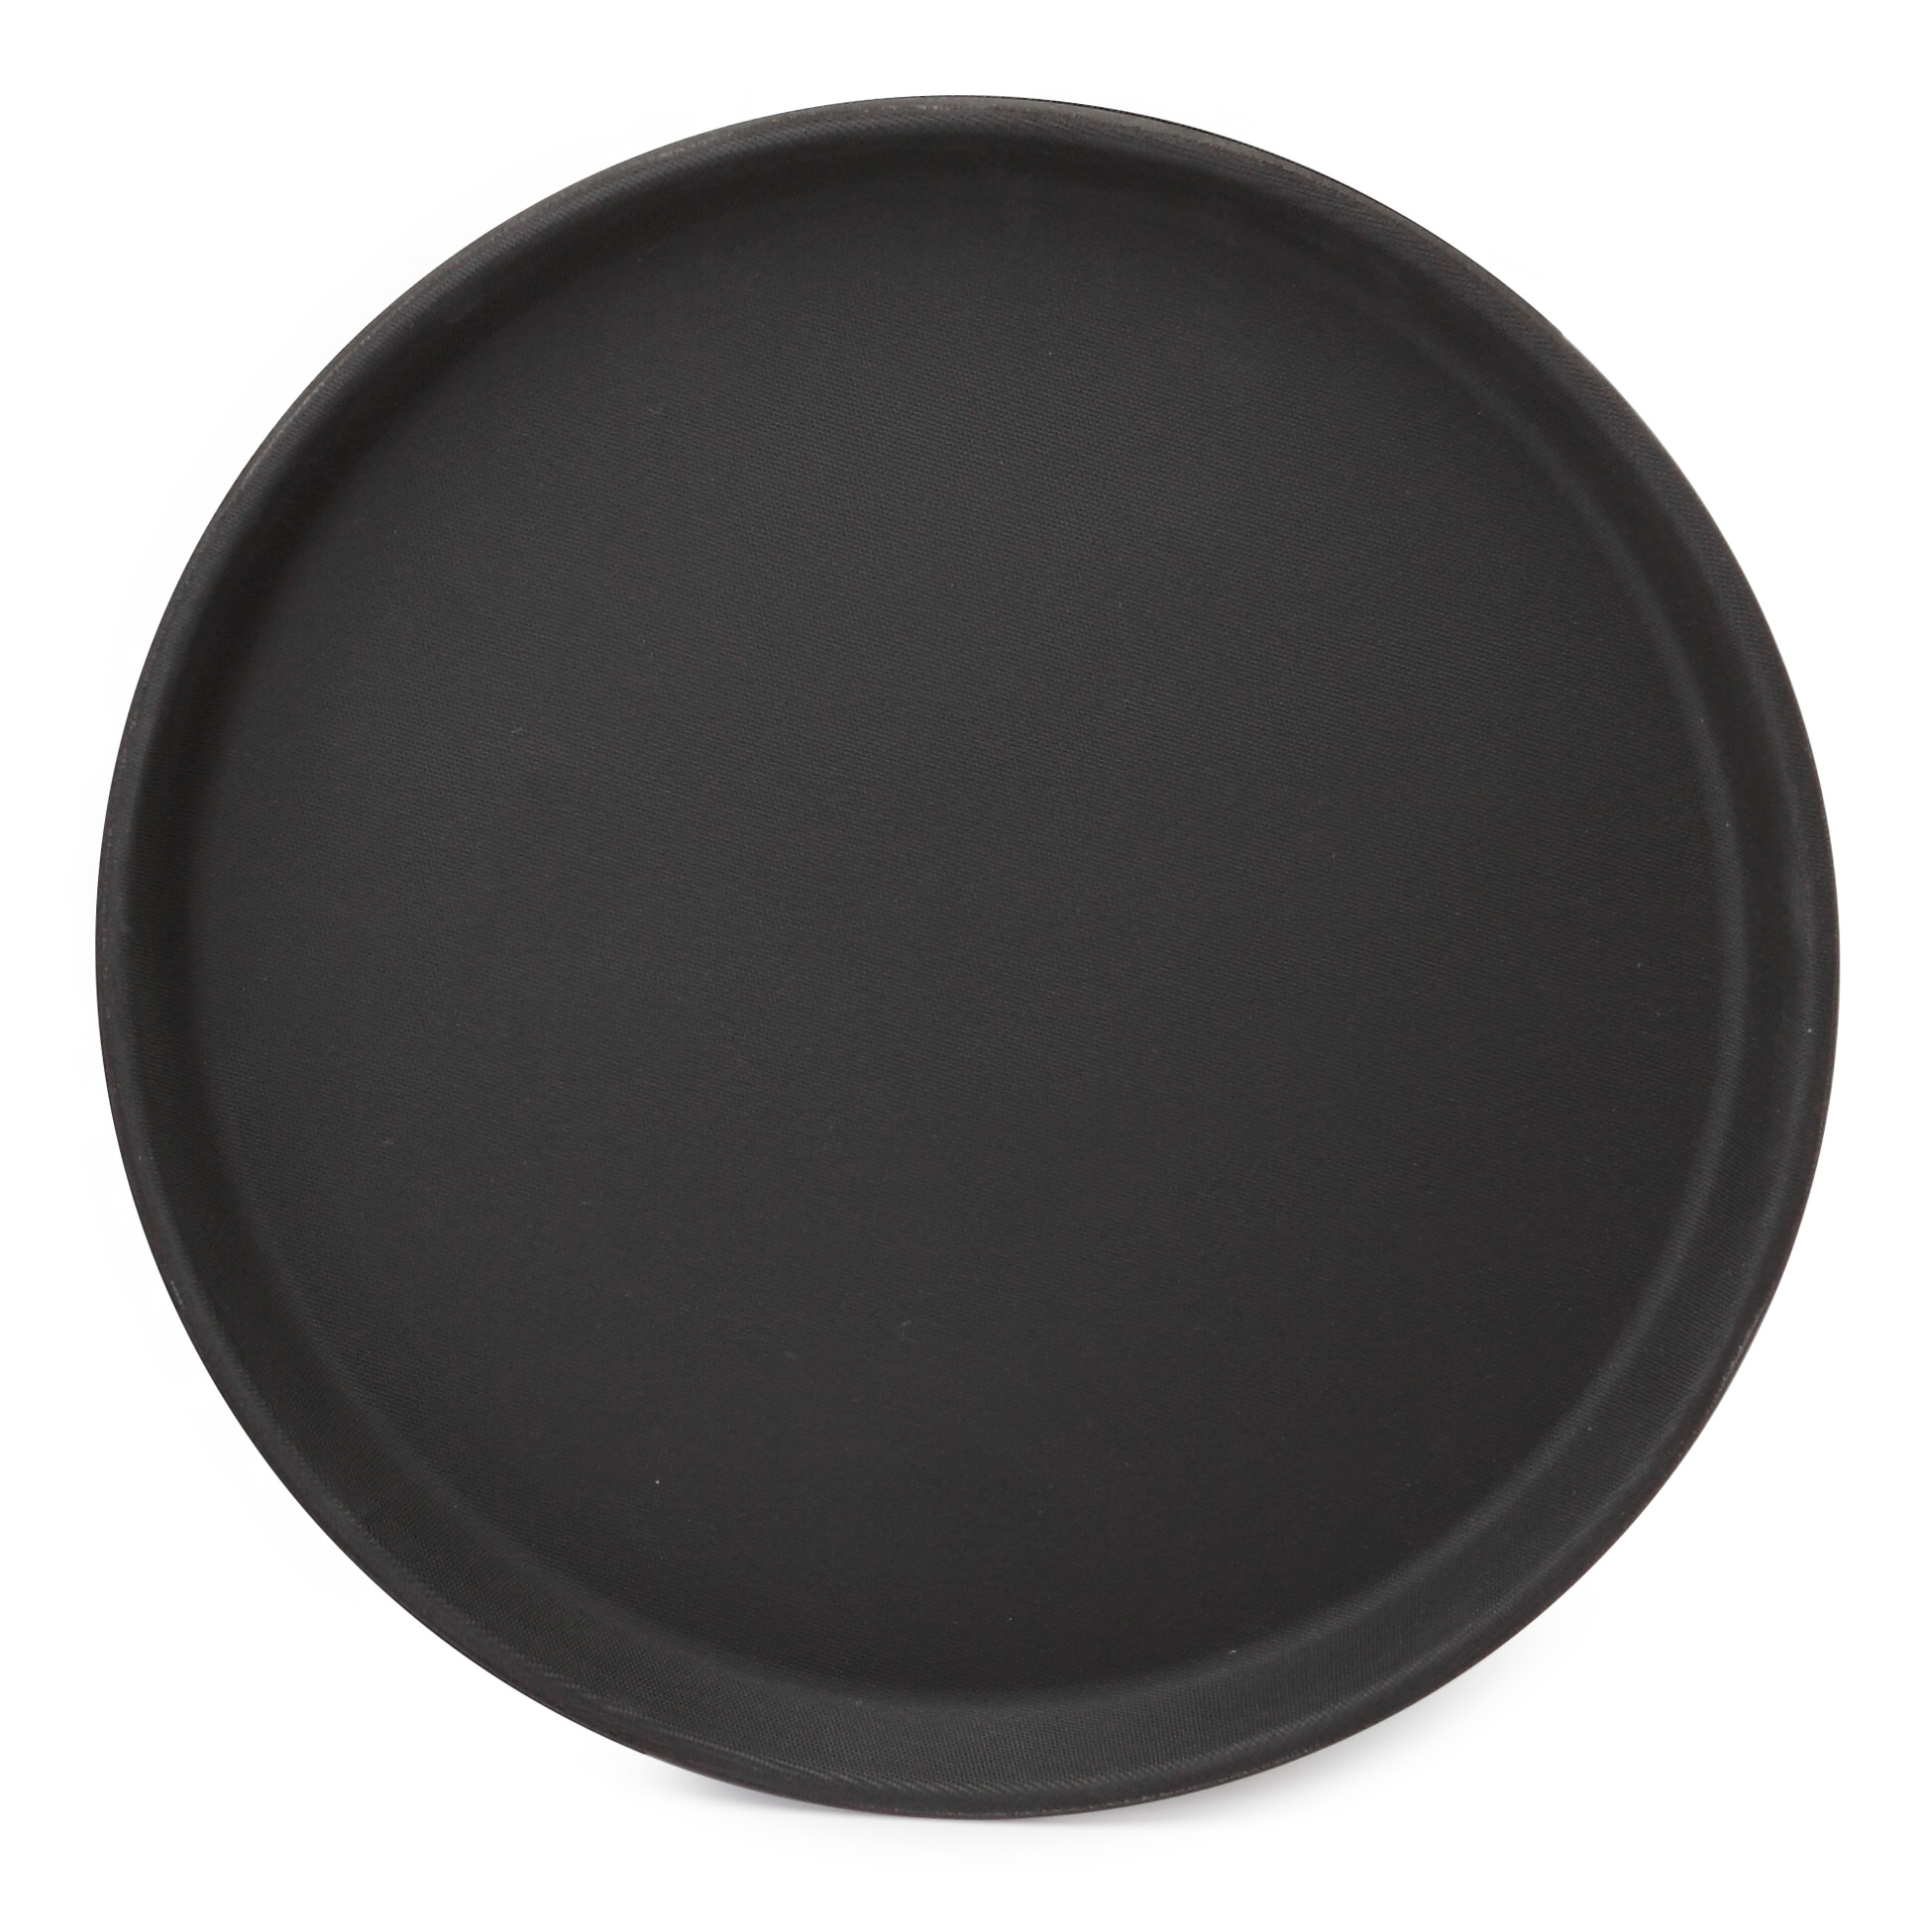 Royal Industries ROY R 1100 BLK serving tray, non-skid